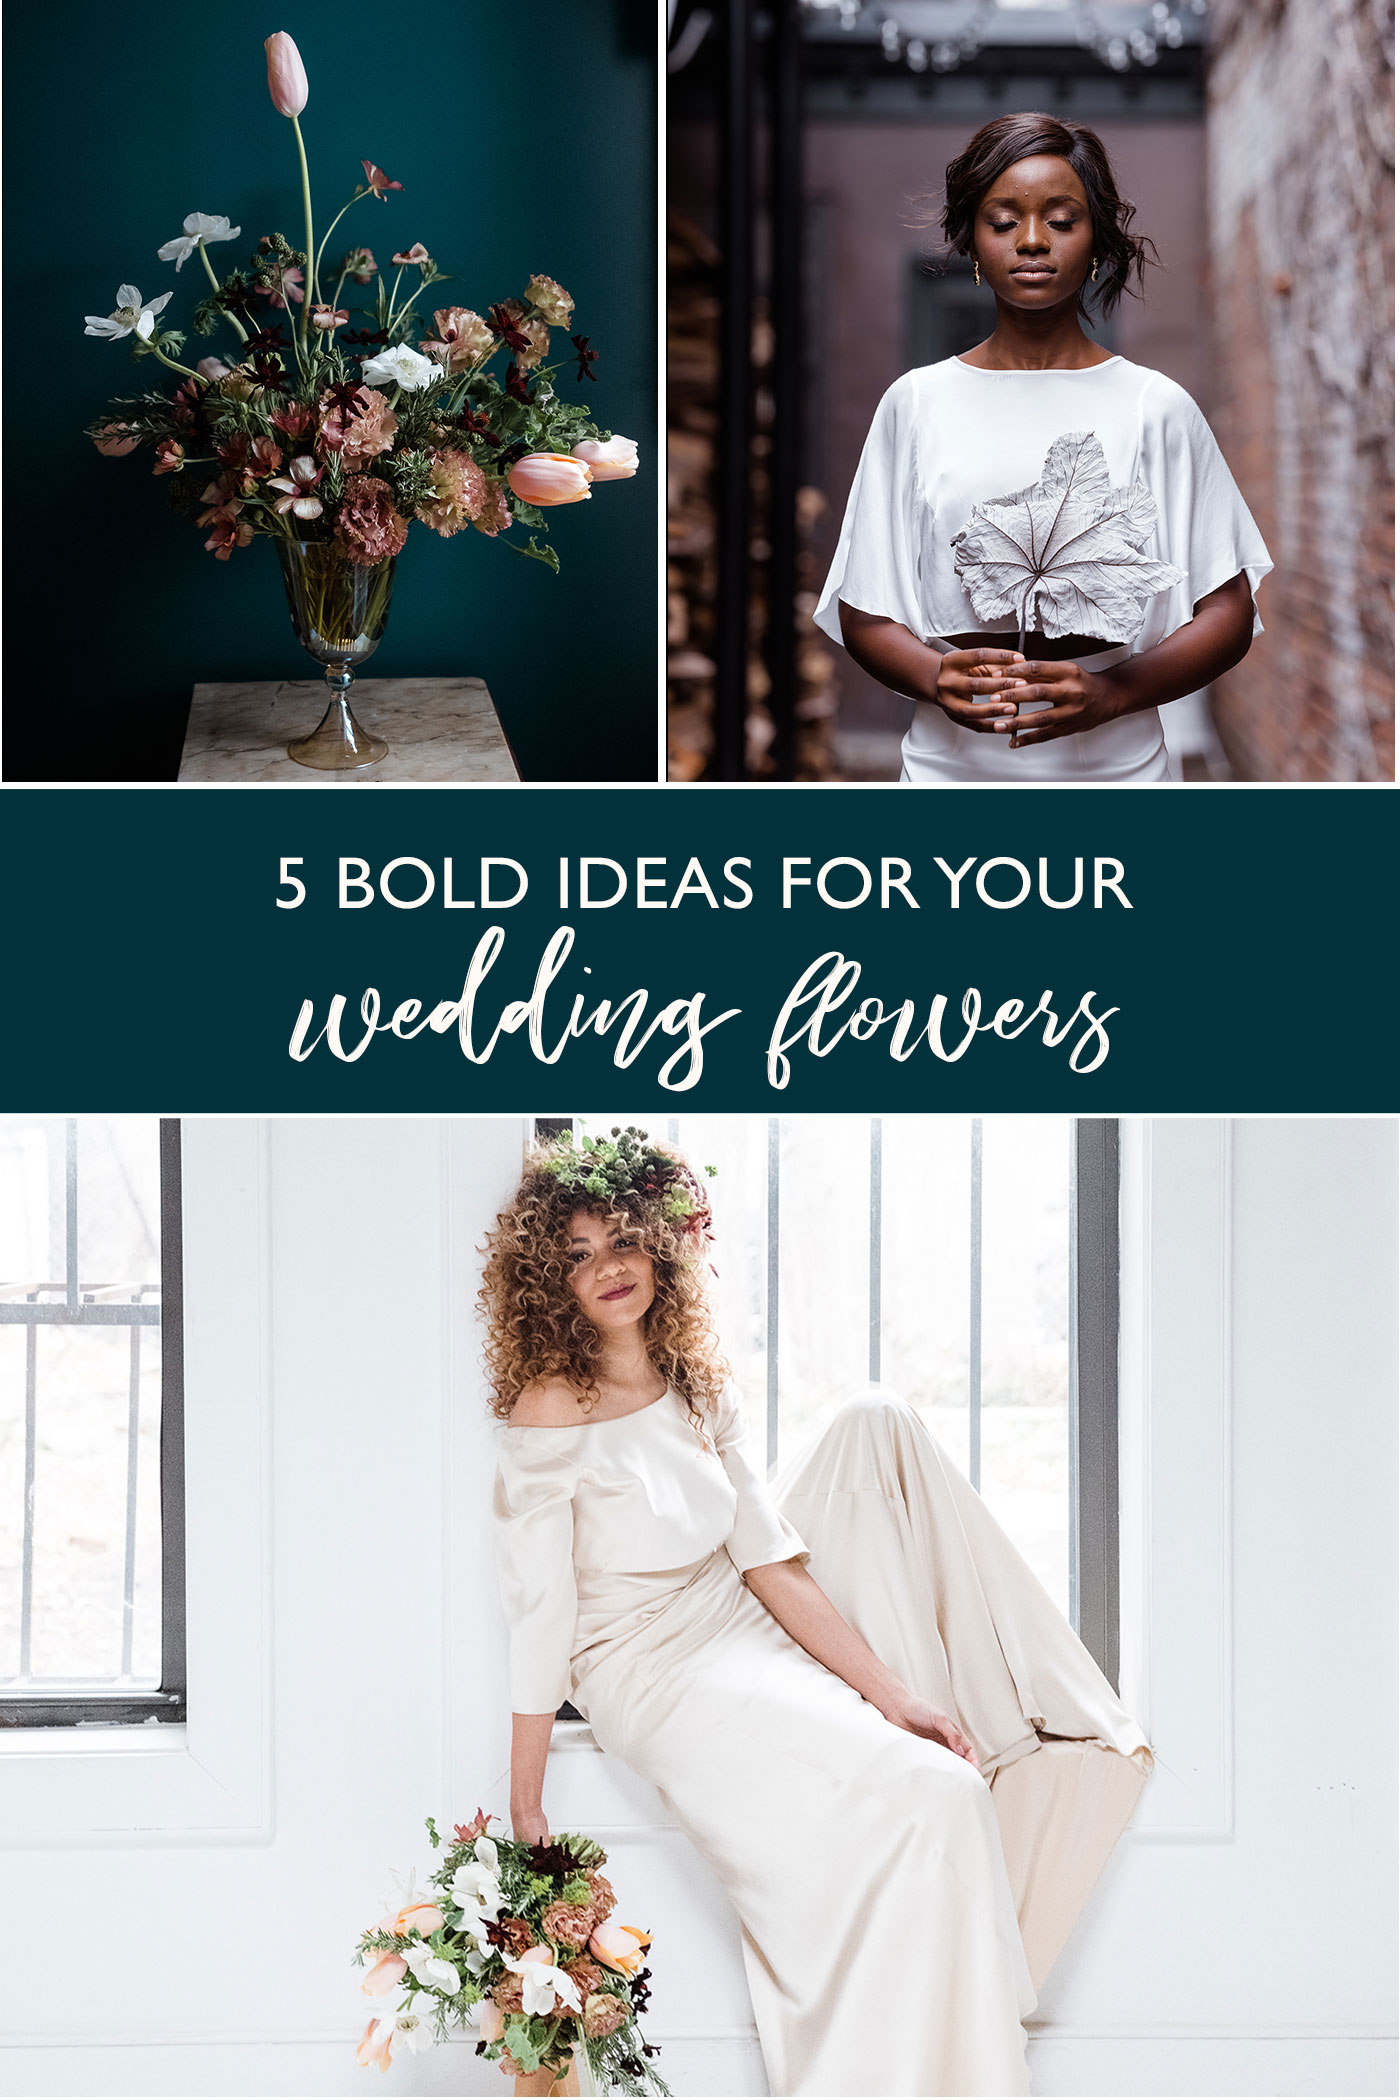 5 Bold Ideas for Your Wedding Flowers